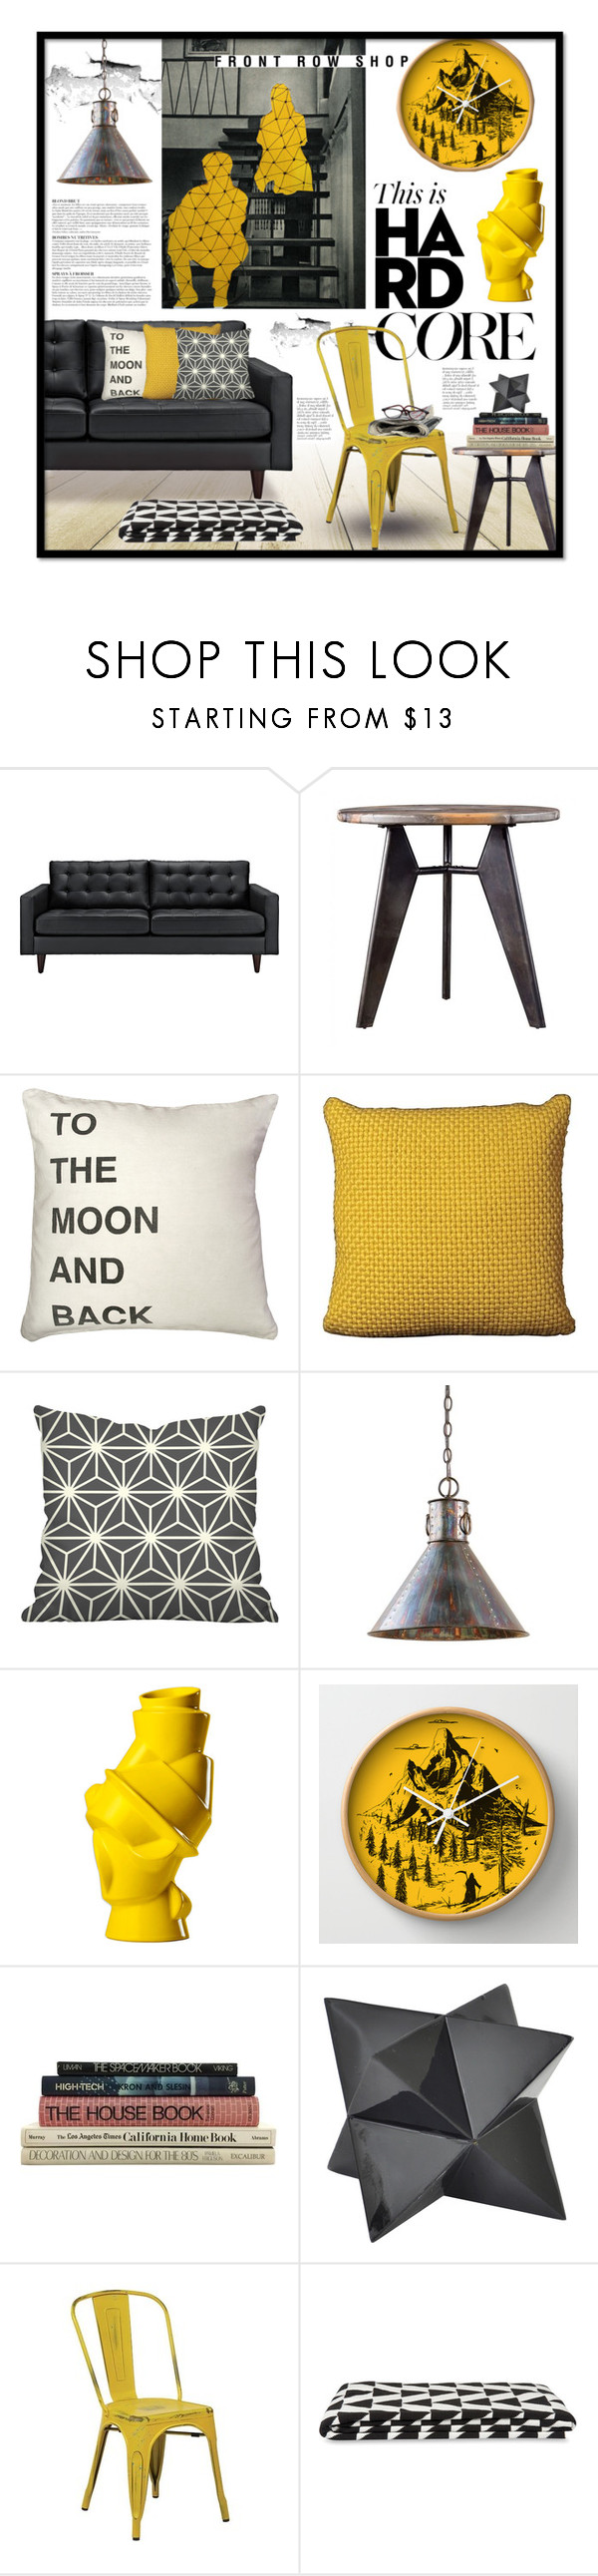 """Hard Core"" by ellergy ❤ liked on Polyvore featuring interior, interiors, interior design, home, home decor, interior decorating, Anja, Steel 